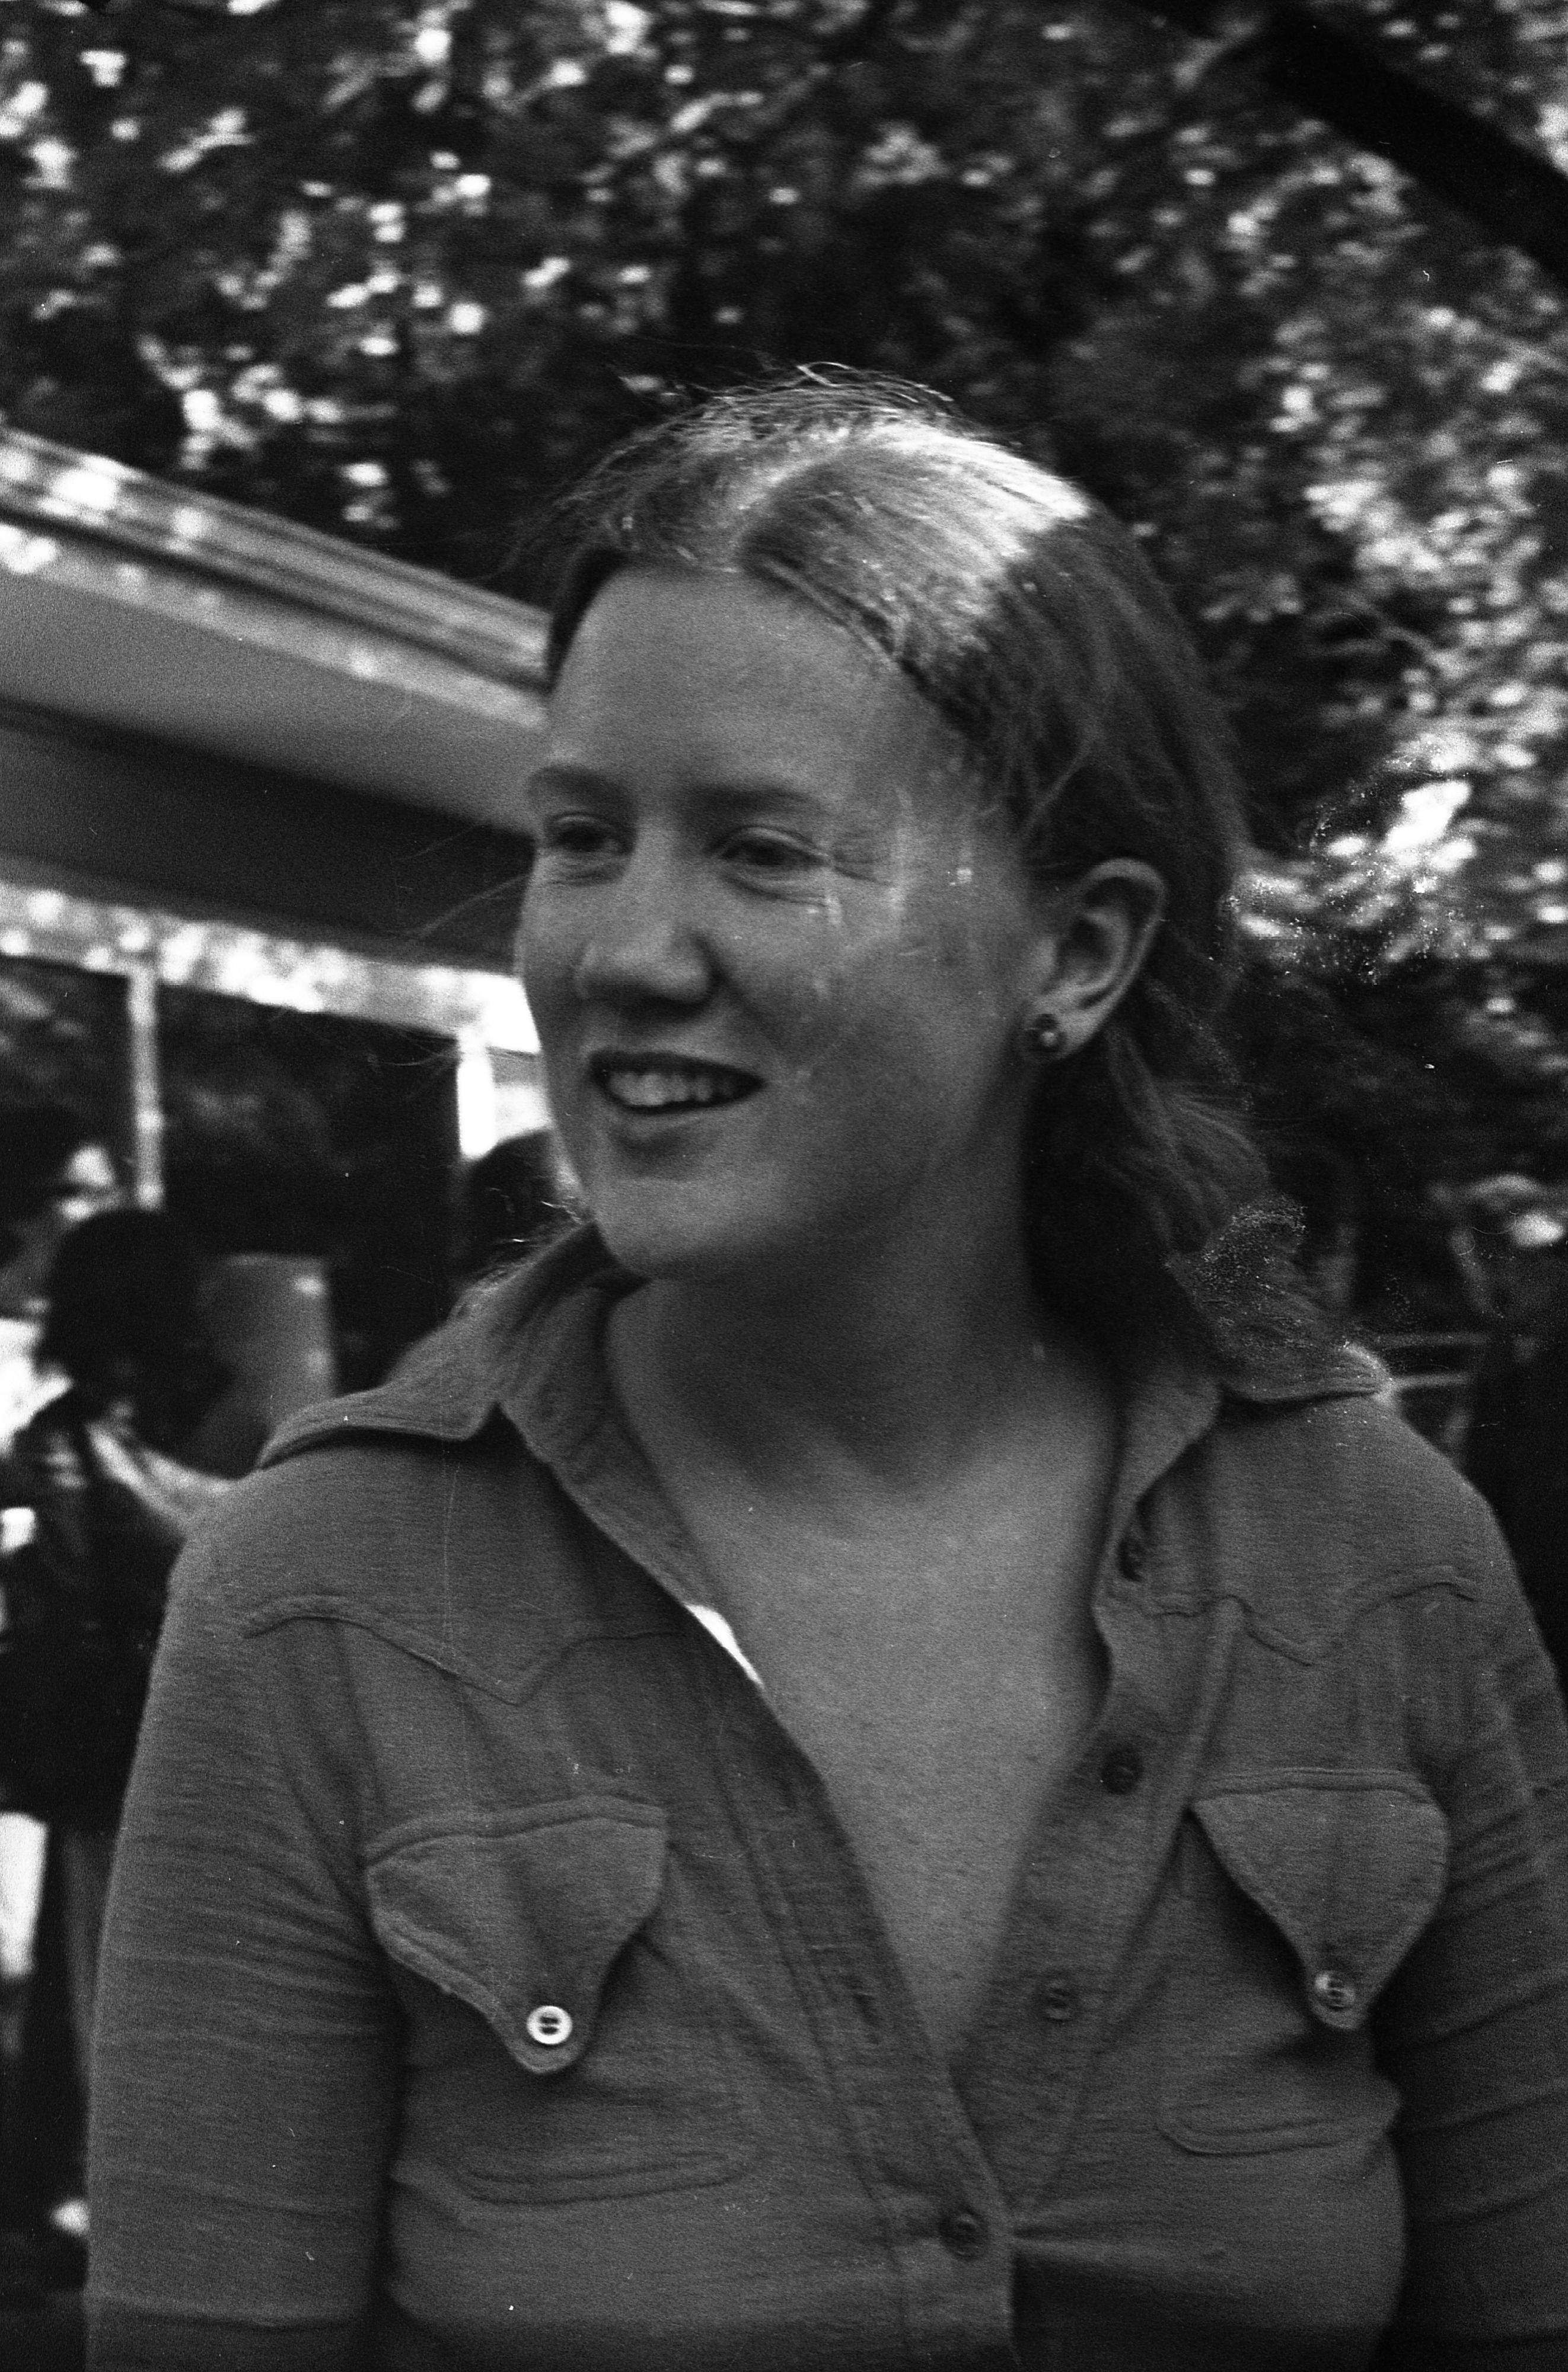 Holly Near At Dr. Edward Pierce's House For Fundraiser, October 1974 image